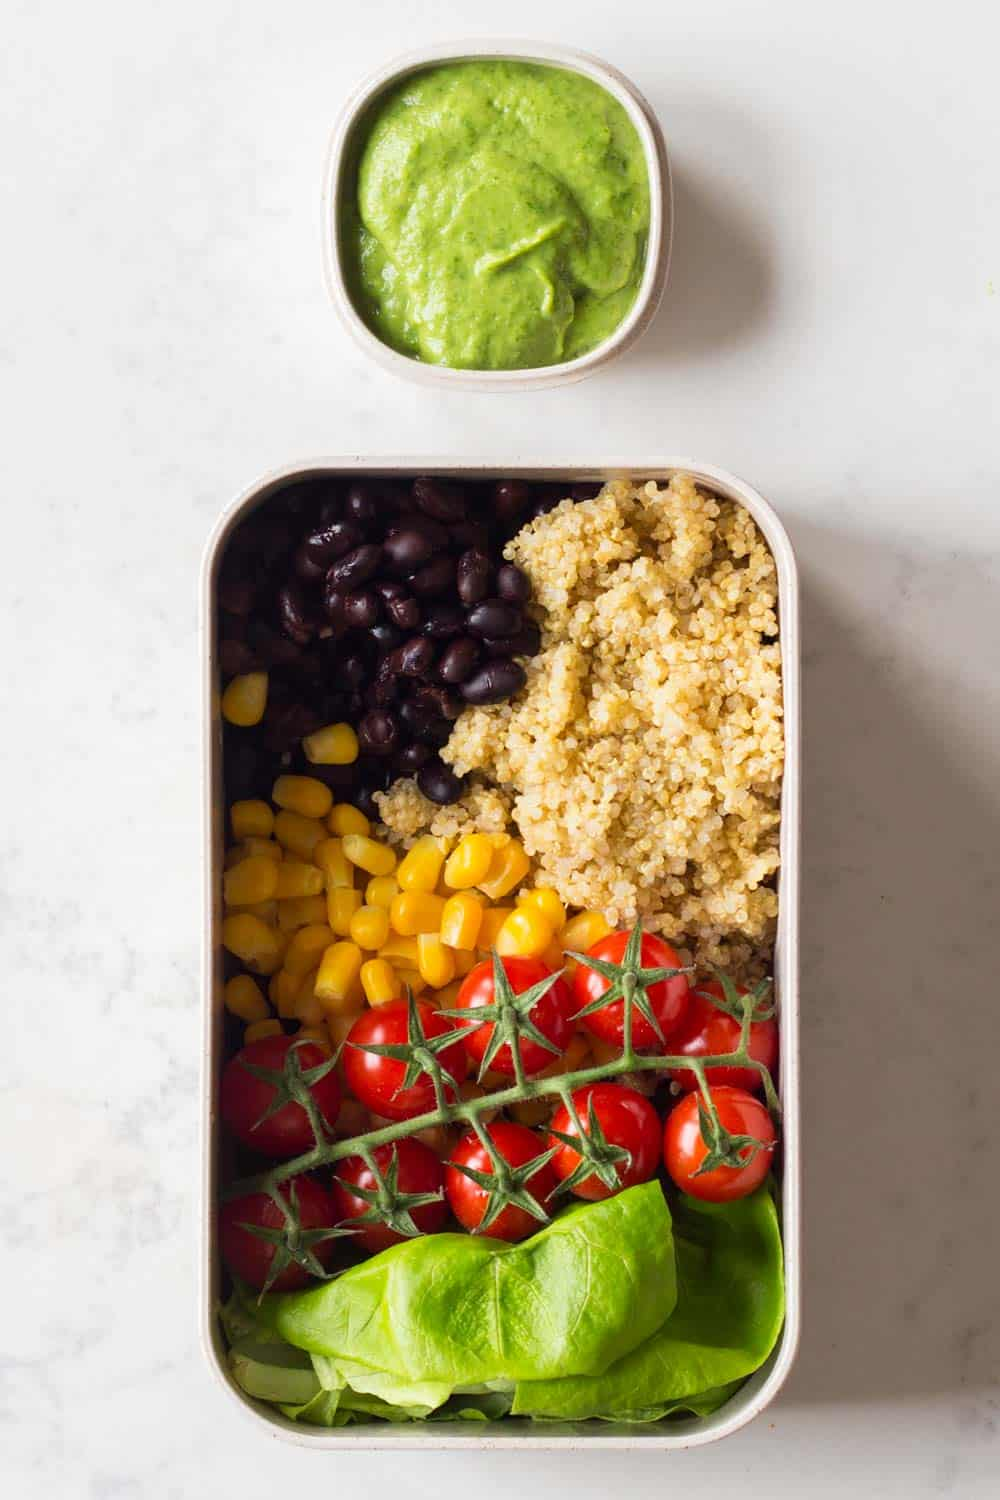 A Vegan Lunch for a Nutritionally-Balanced Vegan Meal Plan - black beans, quinoa, corn, butter lettuce and cherry tomatoes with an avocado cilantro dressing.